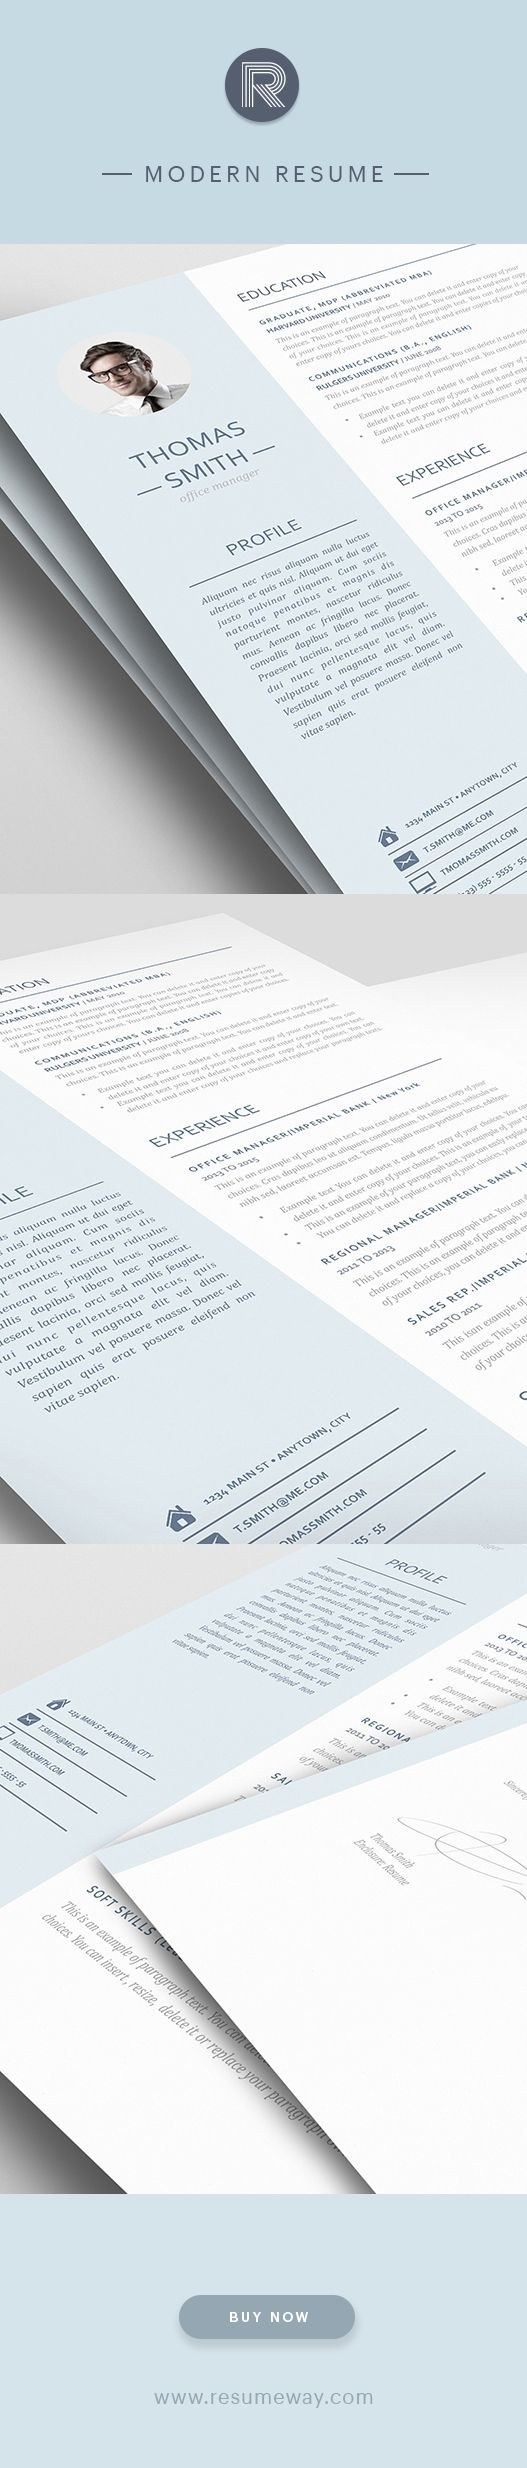 best images about modern resume templates modern resume template 110970 premium line of resume cover letter templates easy edit